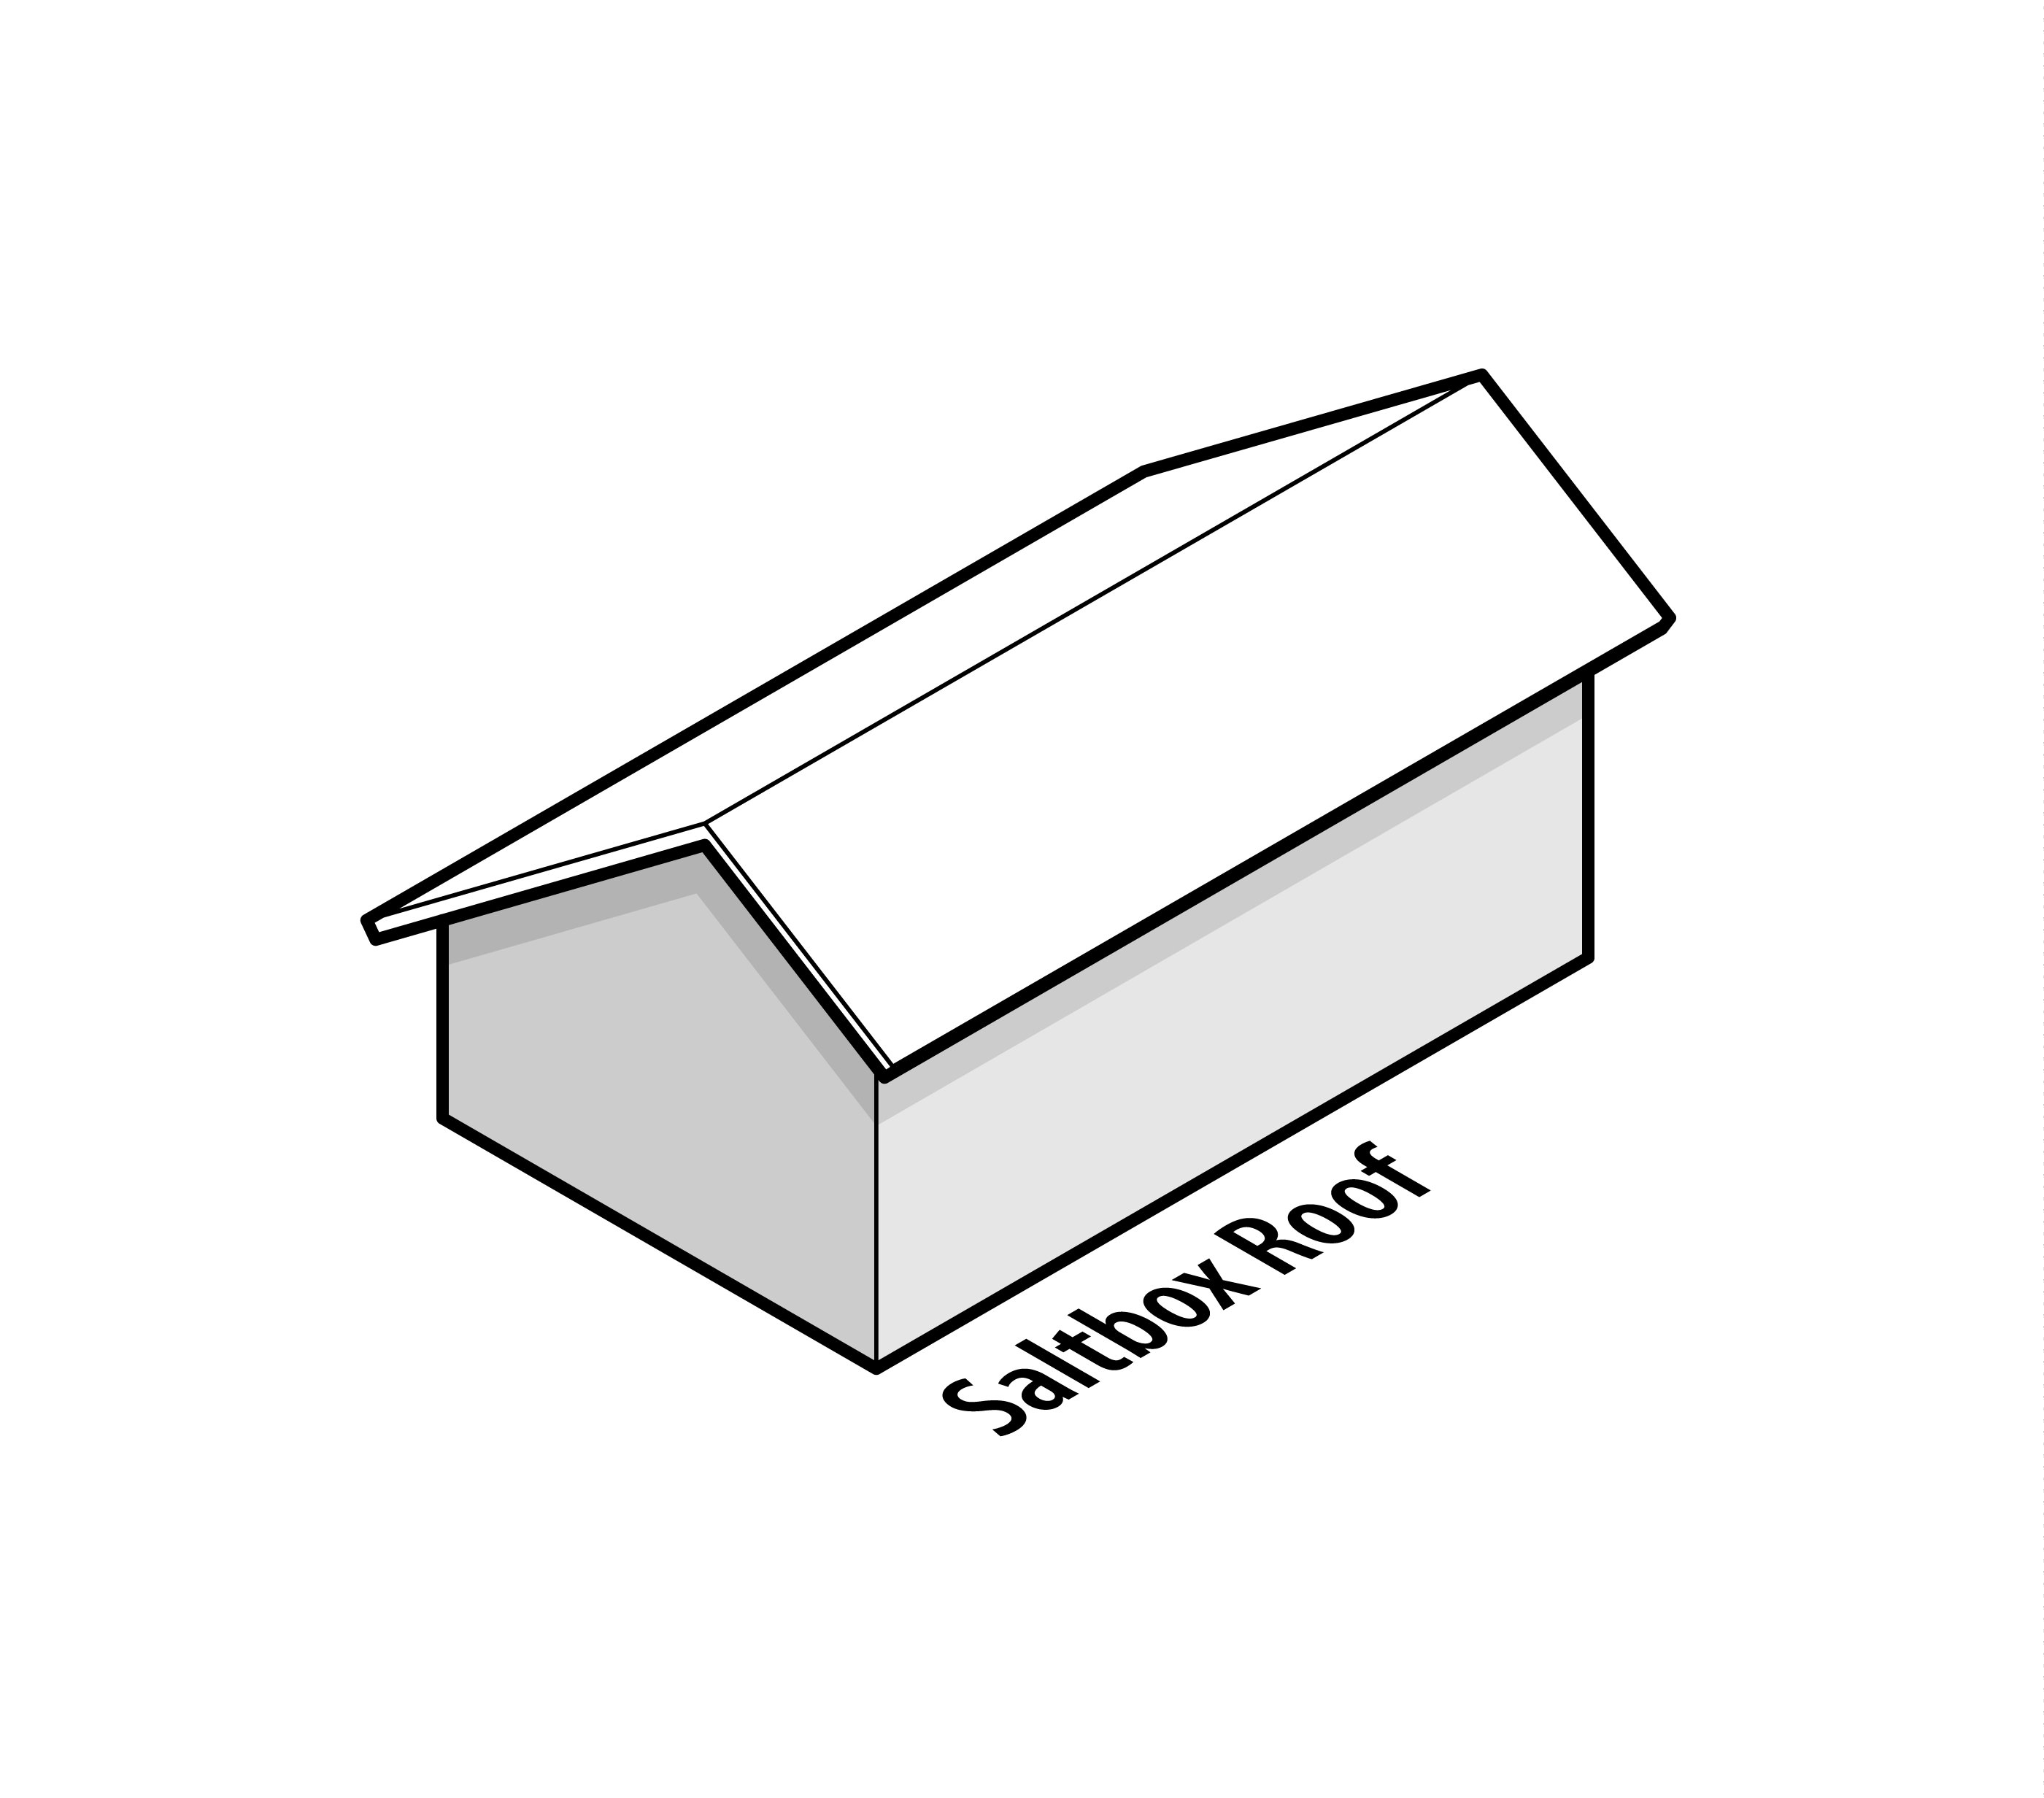 Saltbox roof design engineering feed for Saltbox roof design